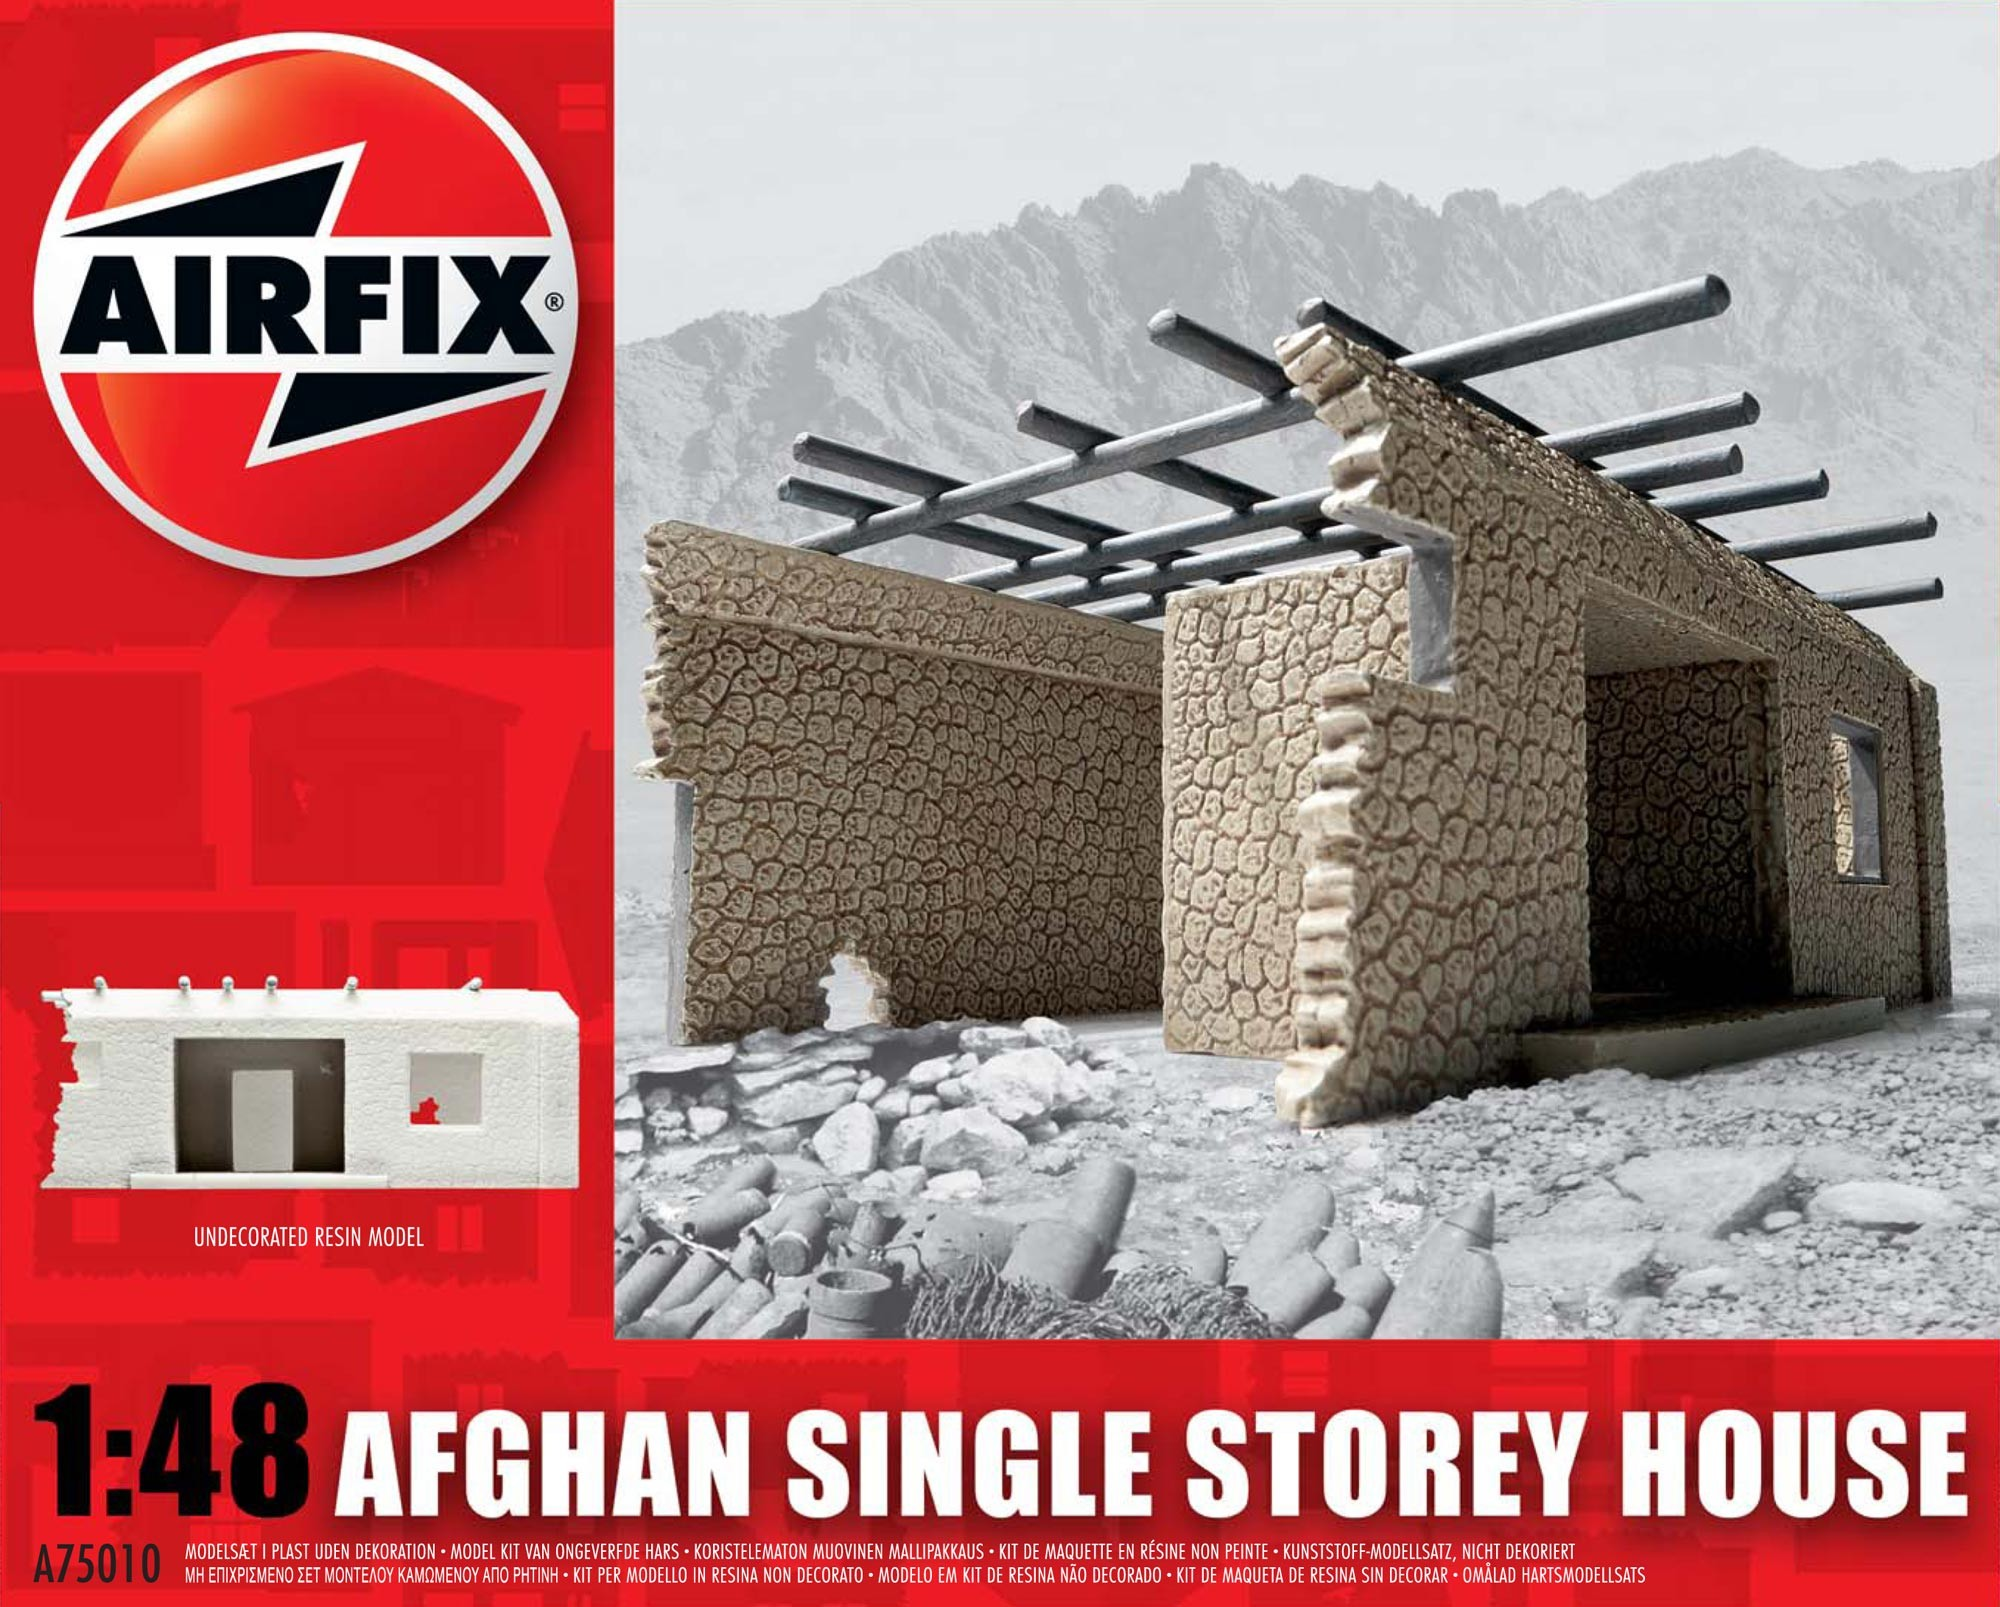 AIR75010 - Airfix 1/48 Afghan Single Storey House